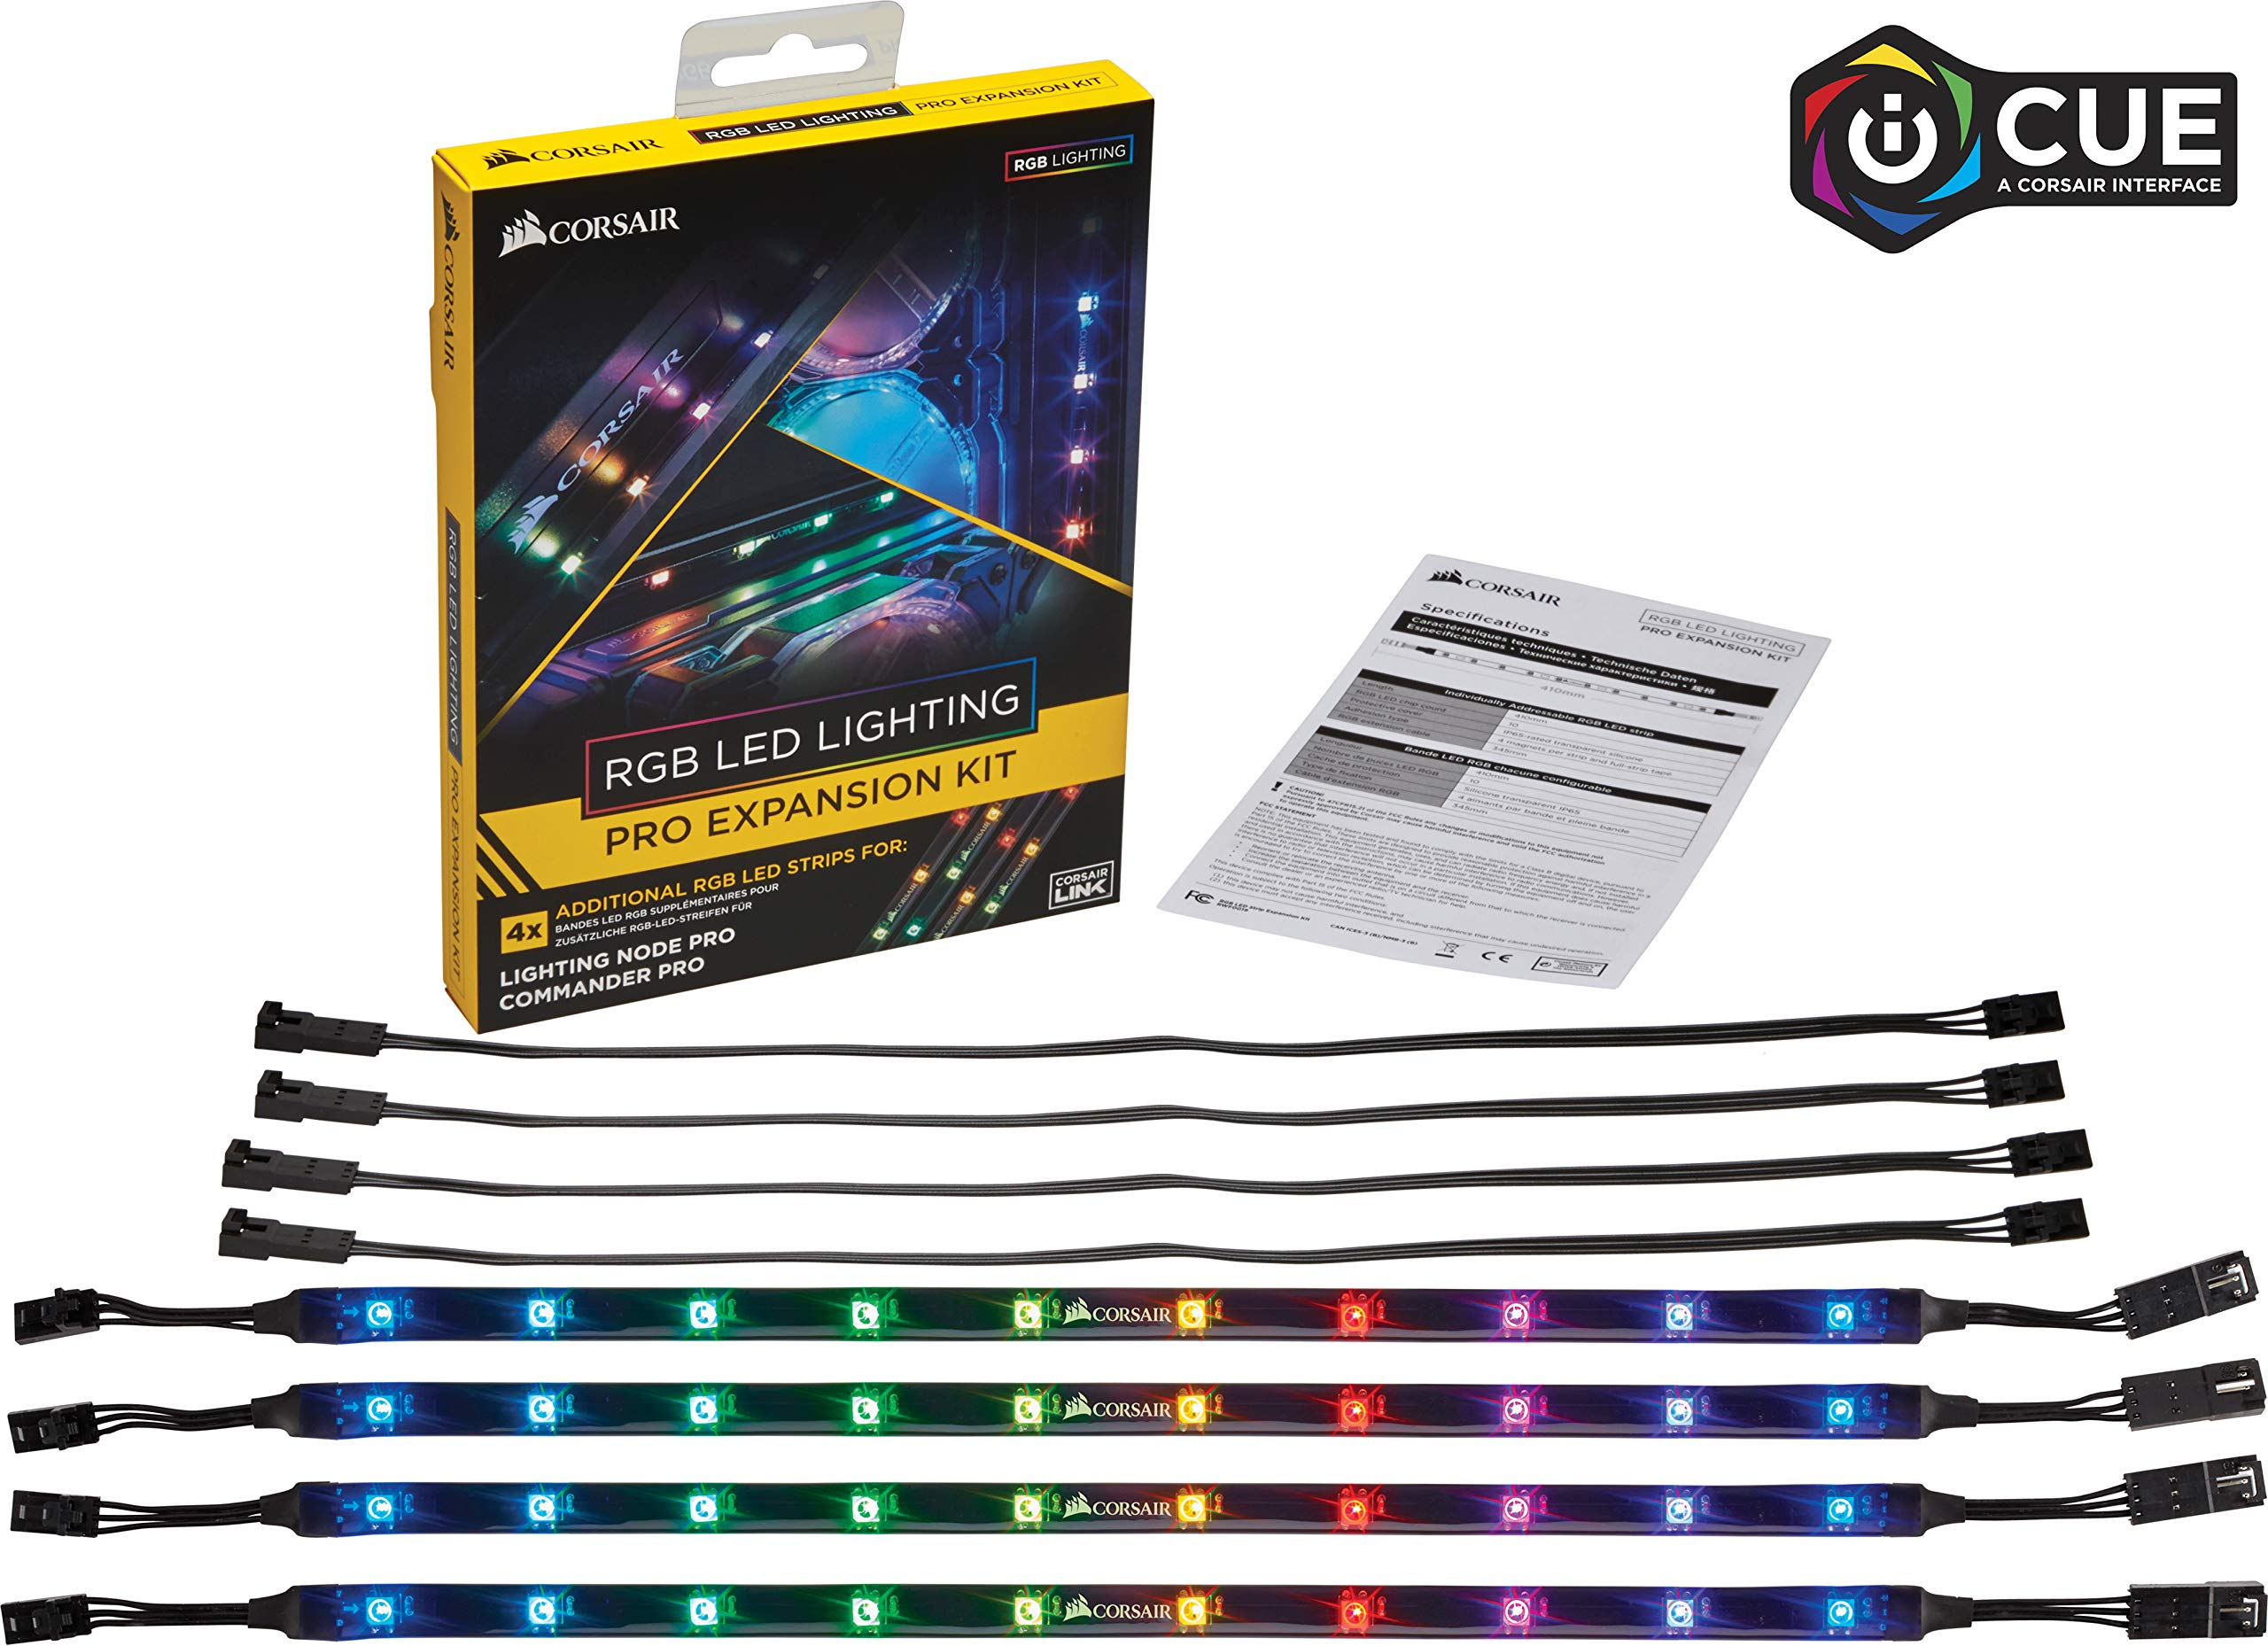 CORSAIR CL-8930002 RGB LED Lighting PRO Expansion Kit